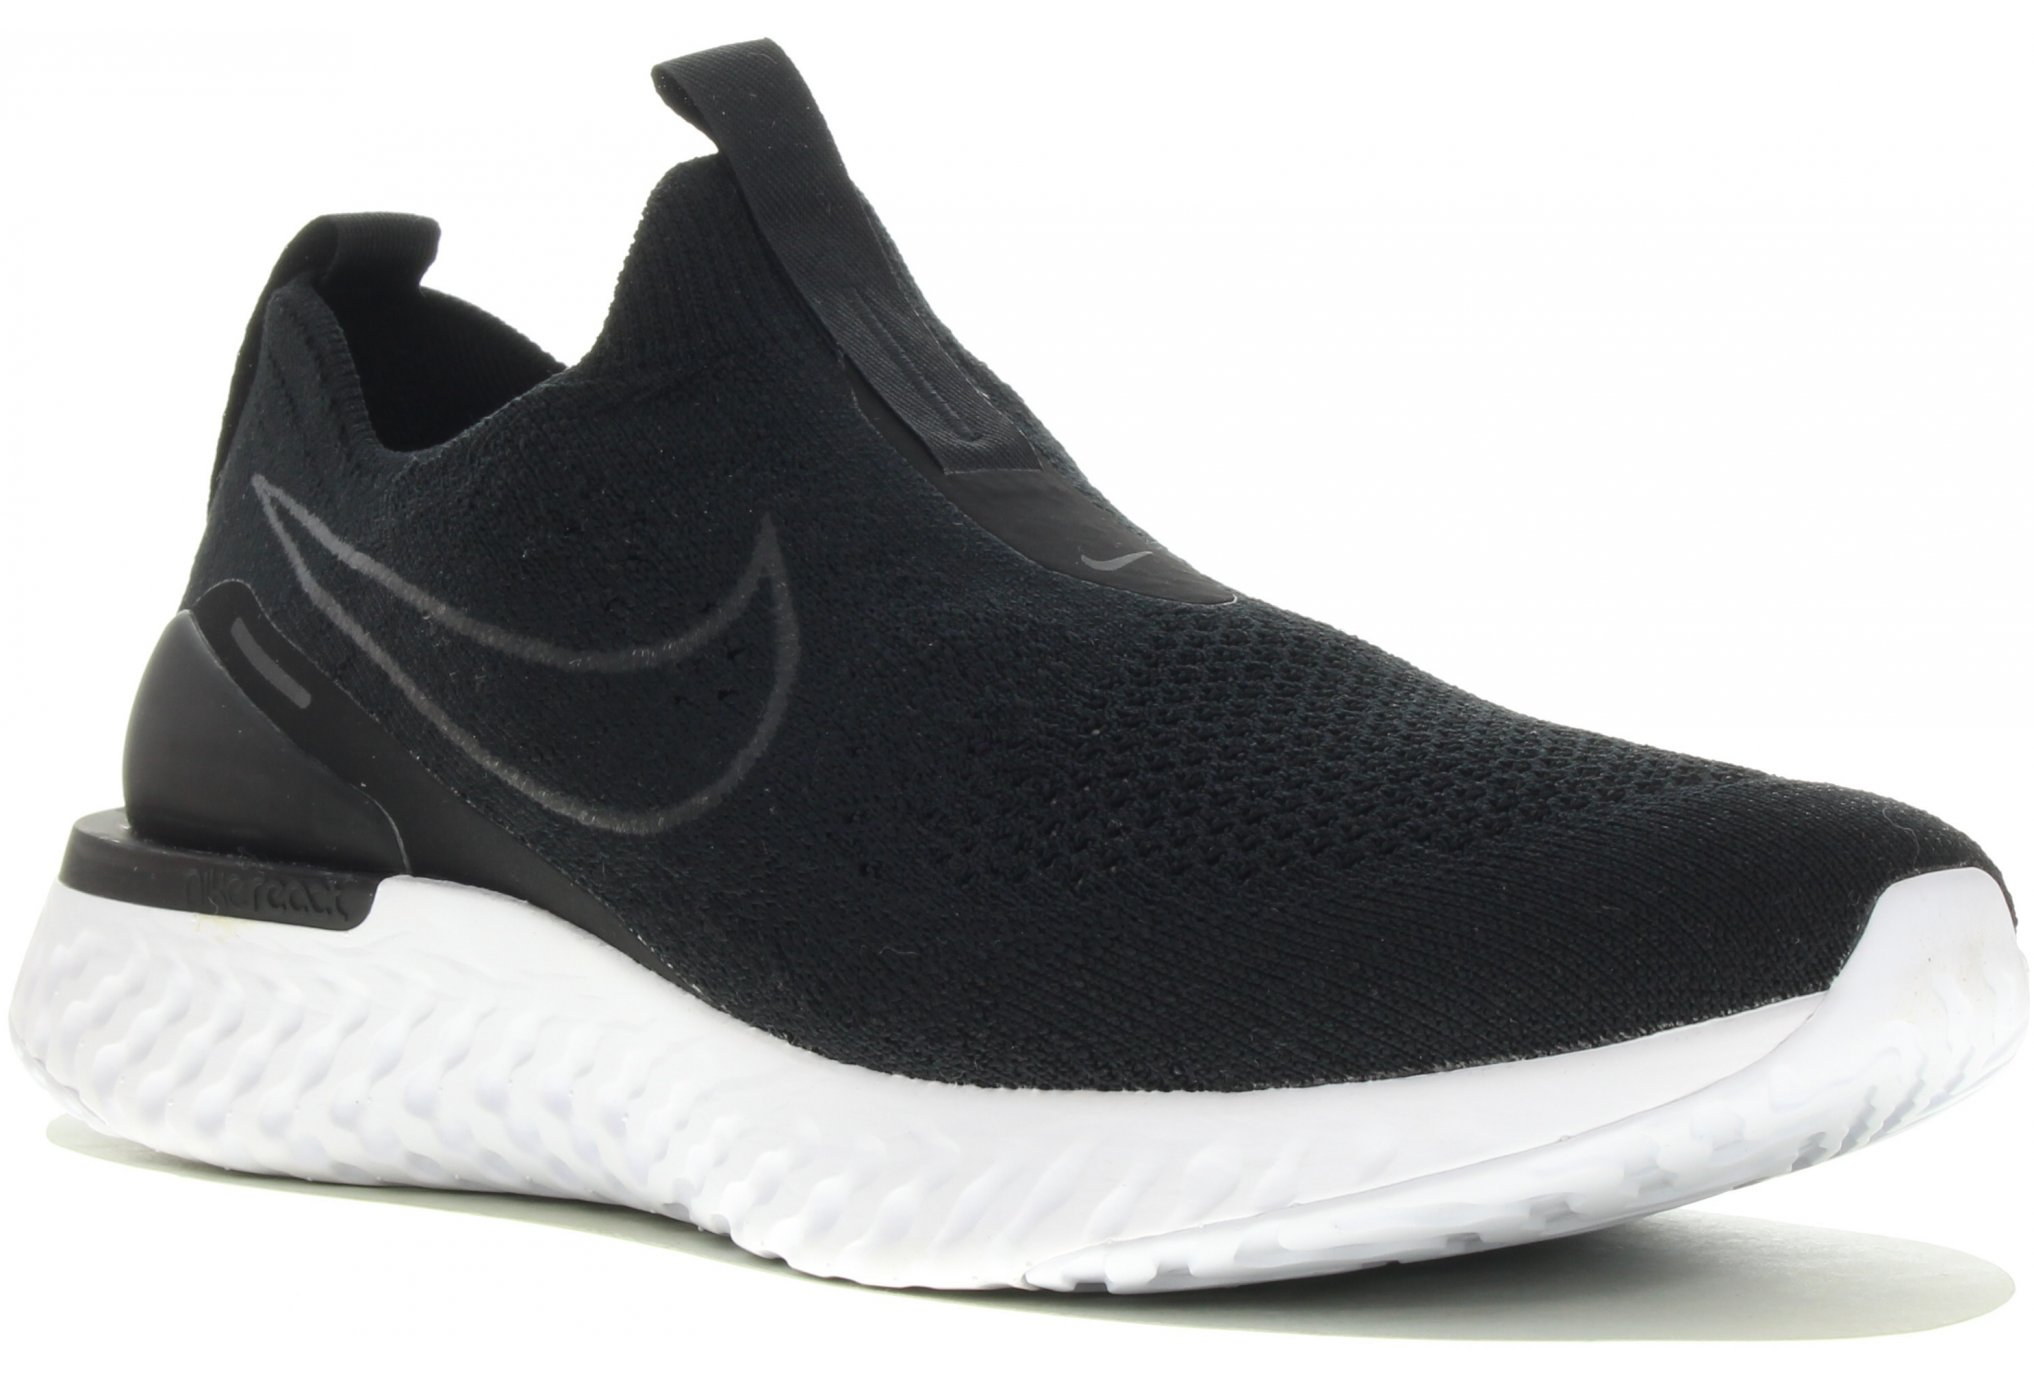 Nike Epic Phantom React FlyKnit Chaussures running femme